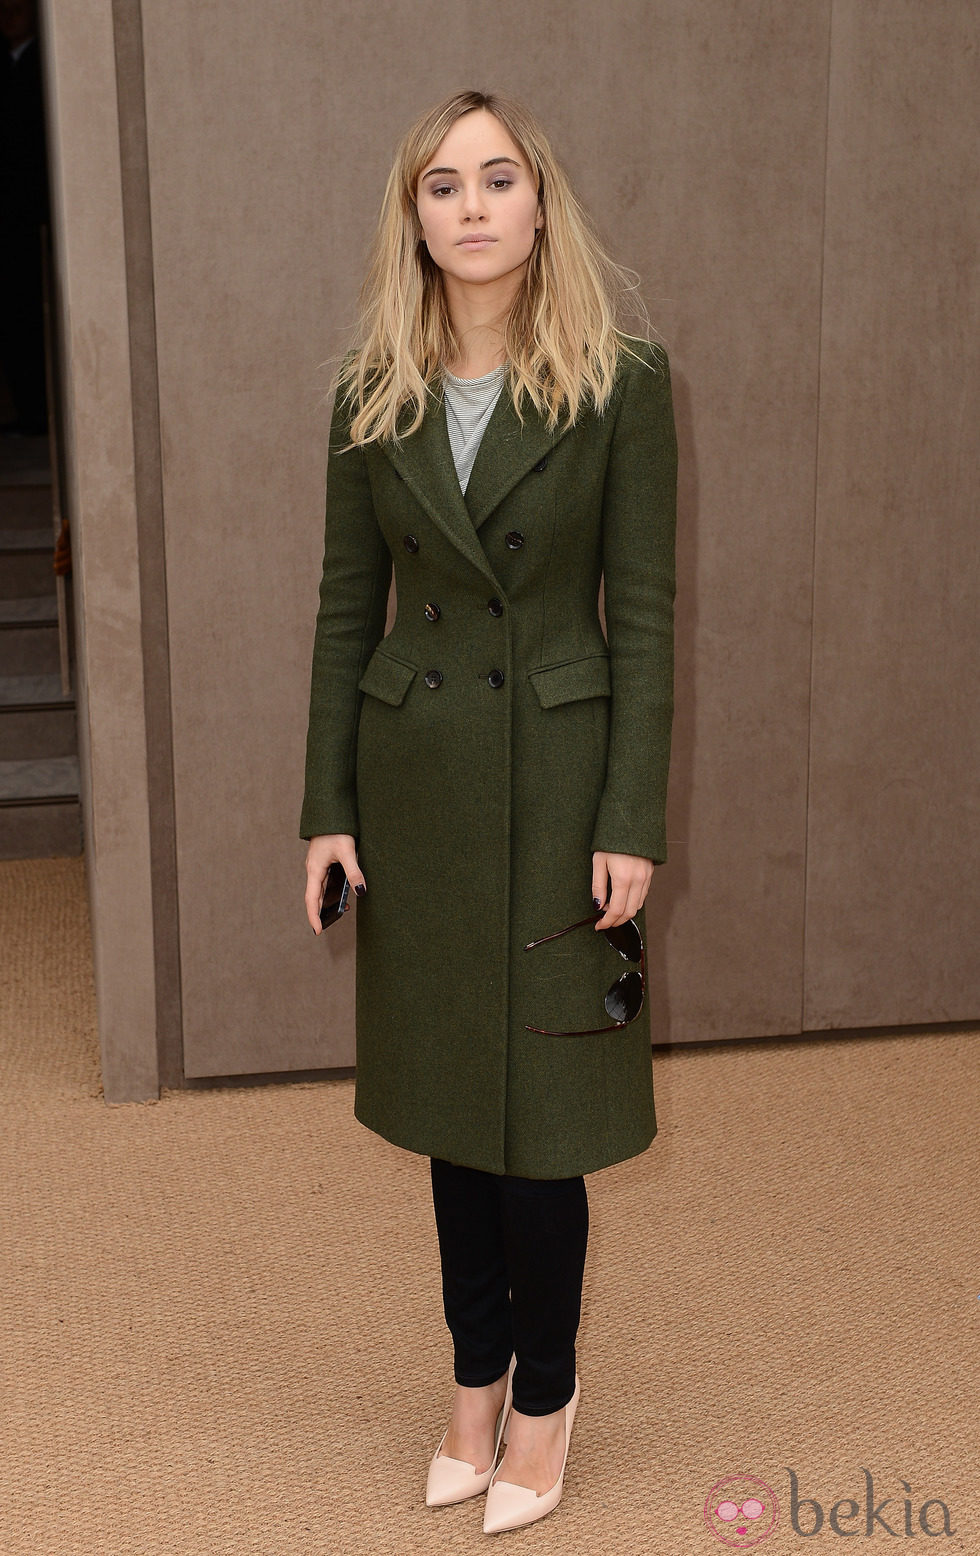 Suki Waterhouse en el desfile de Burberry en la Londres Fashion Week 2014